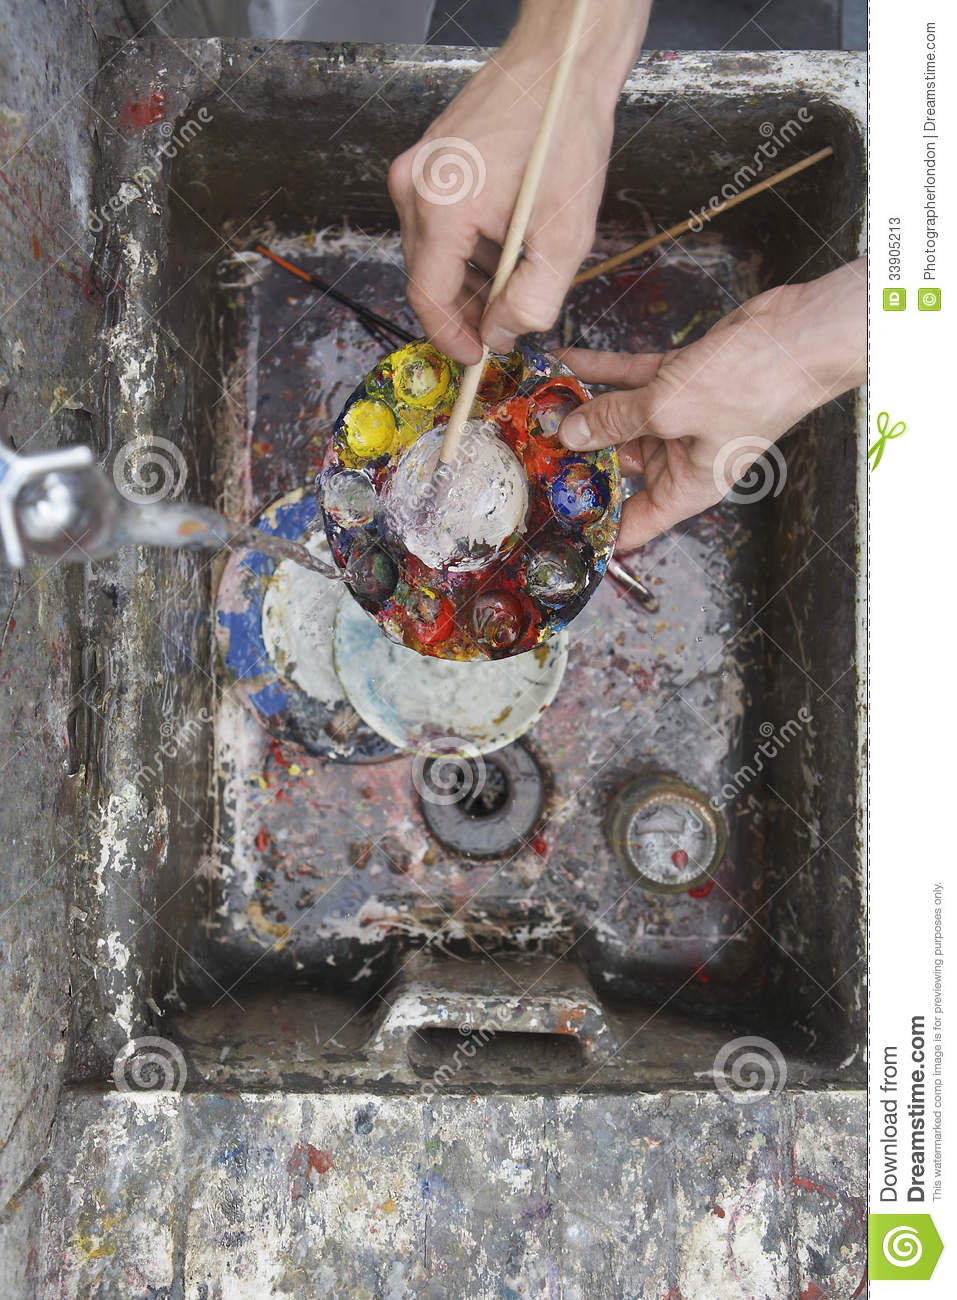 Hands Cleaning Palette At Dirty Sink Stock Image Image